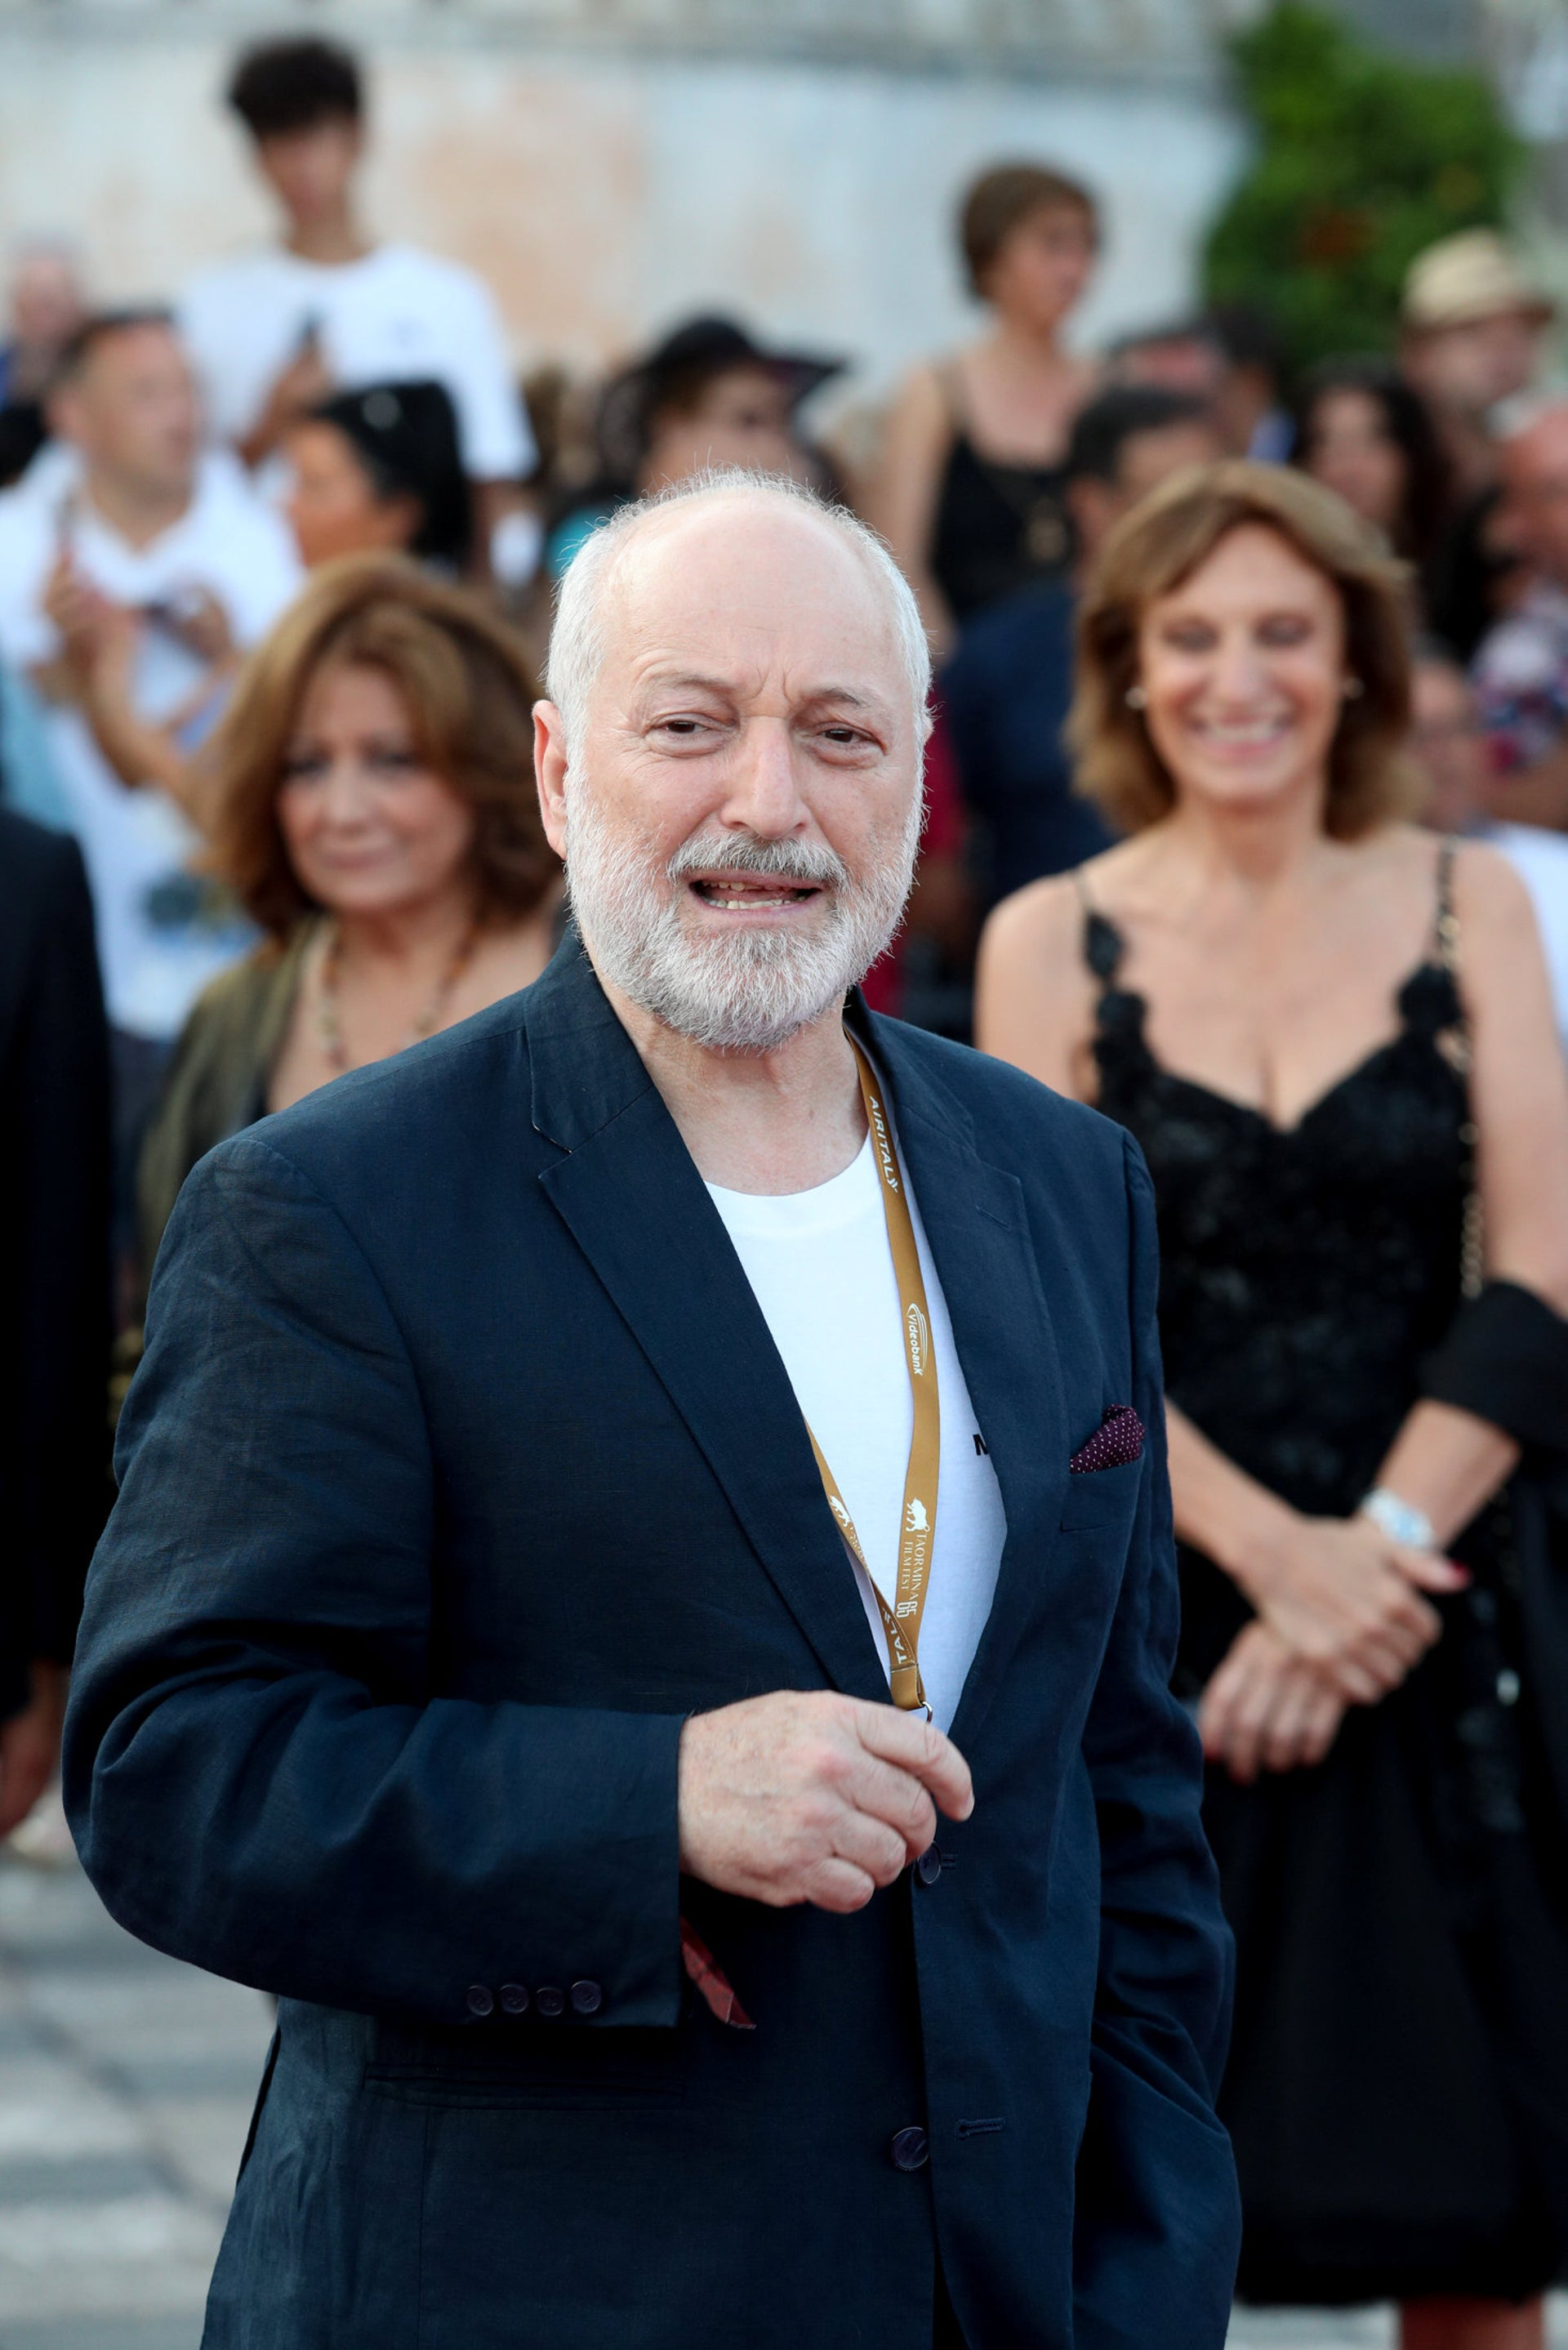 Author André Aciman attends the 65th Taormina Film Festival in Taormina, Italy, on June 30, 2019.